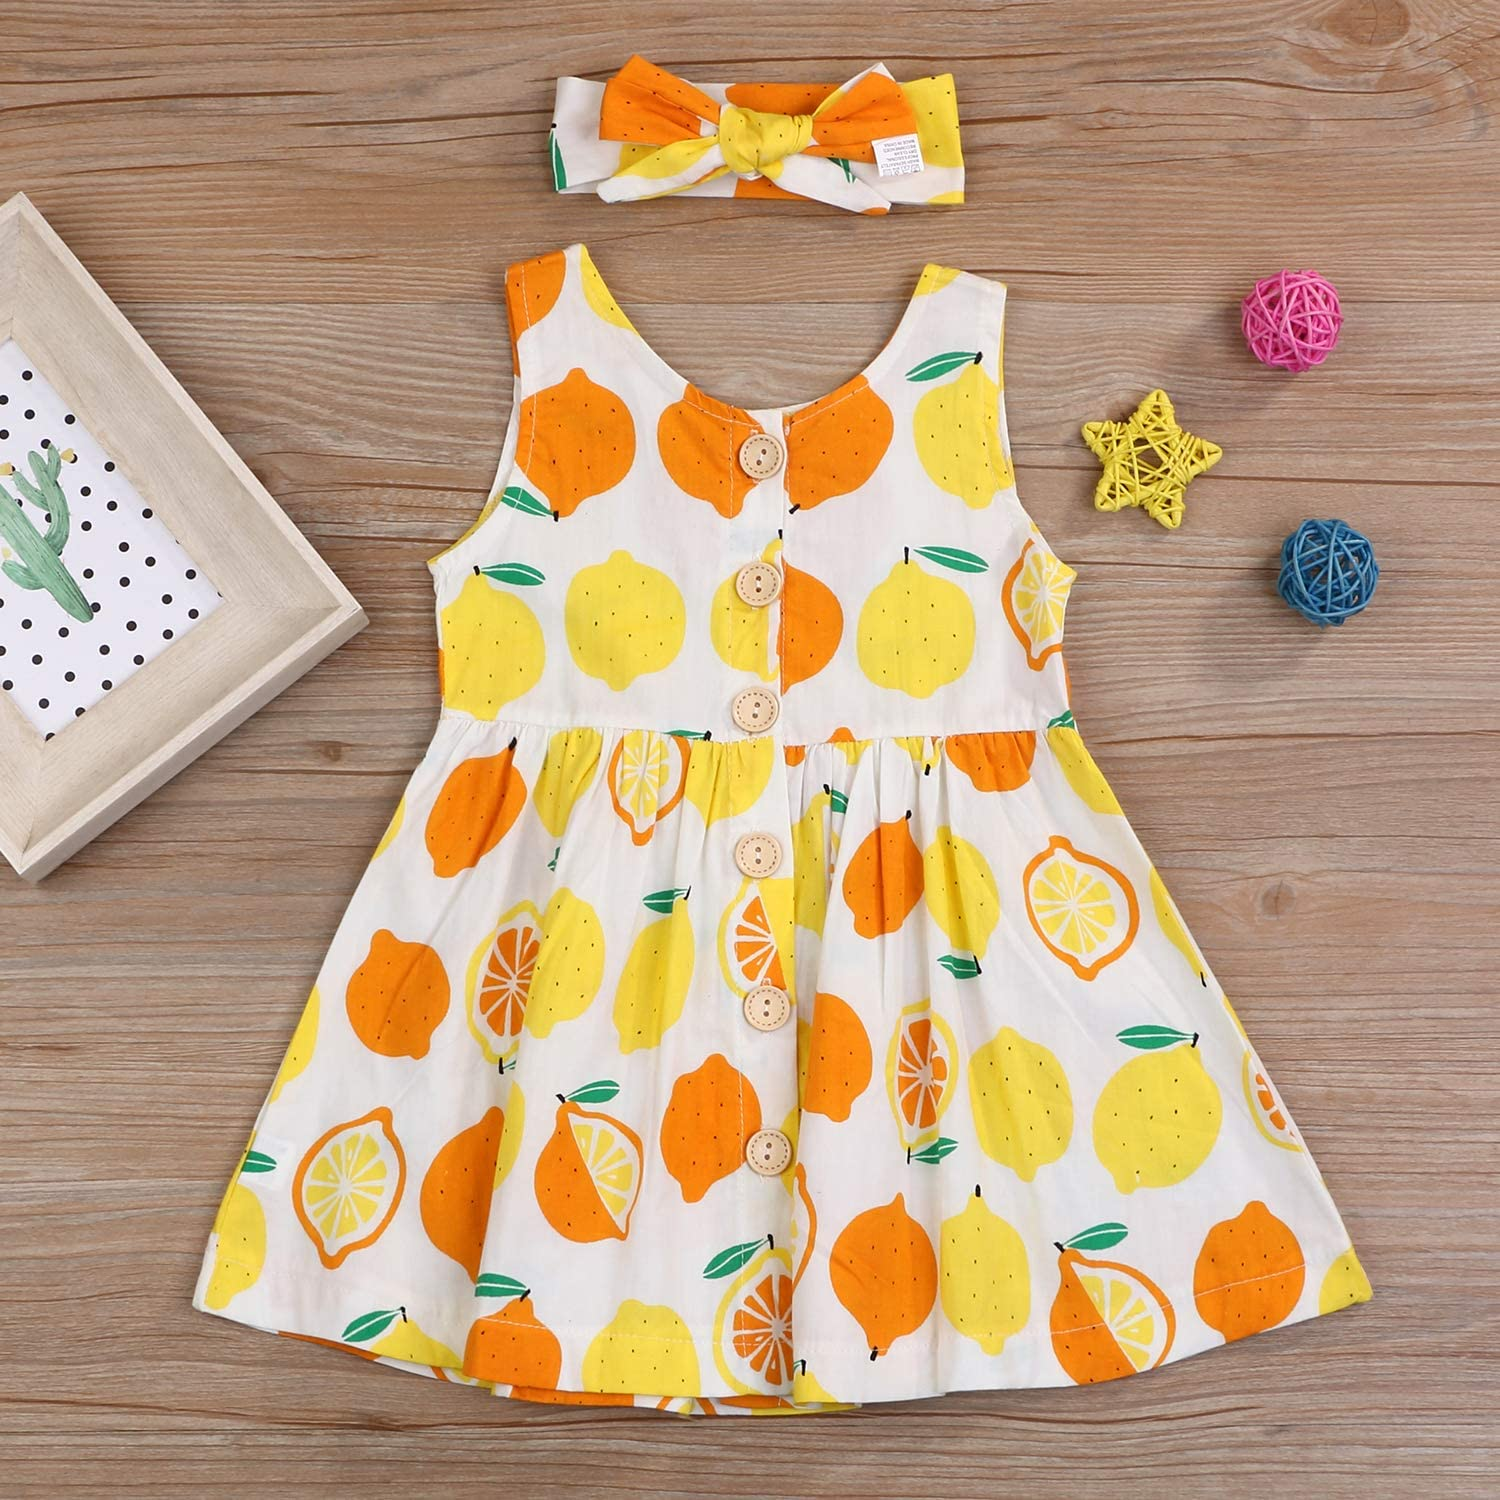 YOUNGER TREE Toddler Dresses Lemon Baby Girls Pineapple Fruit Dress Outfit Summer Girl Dress Spring Sundress